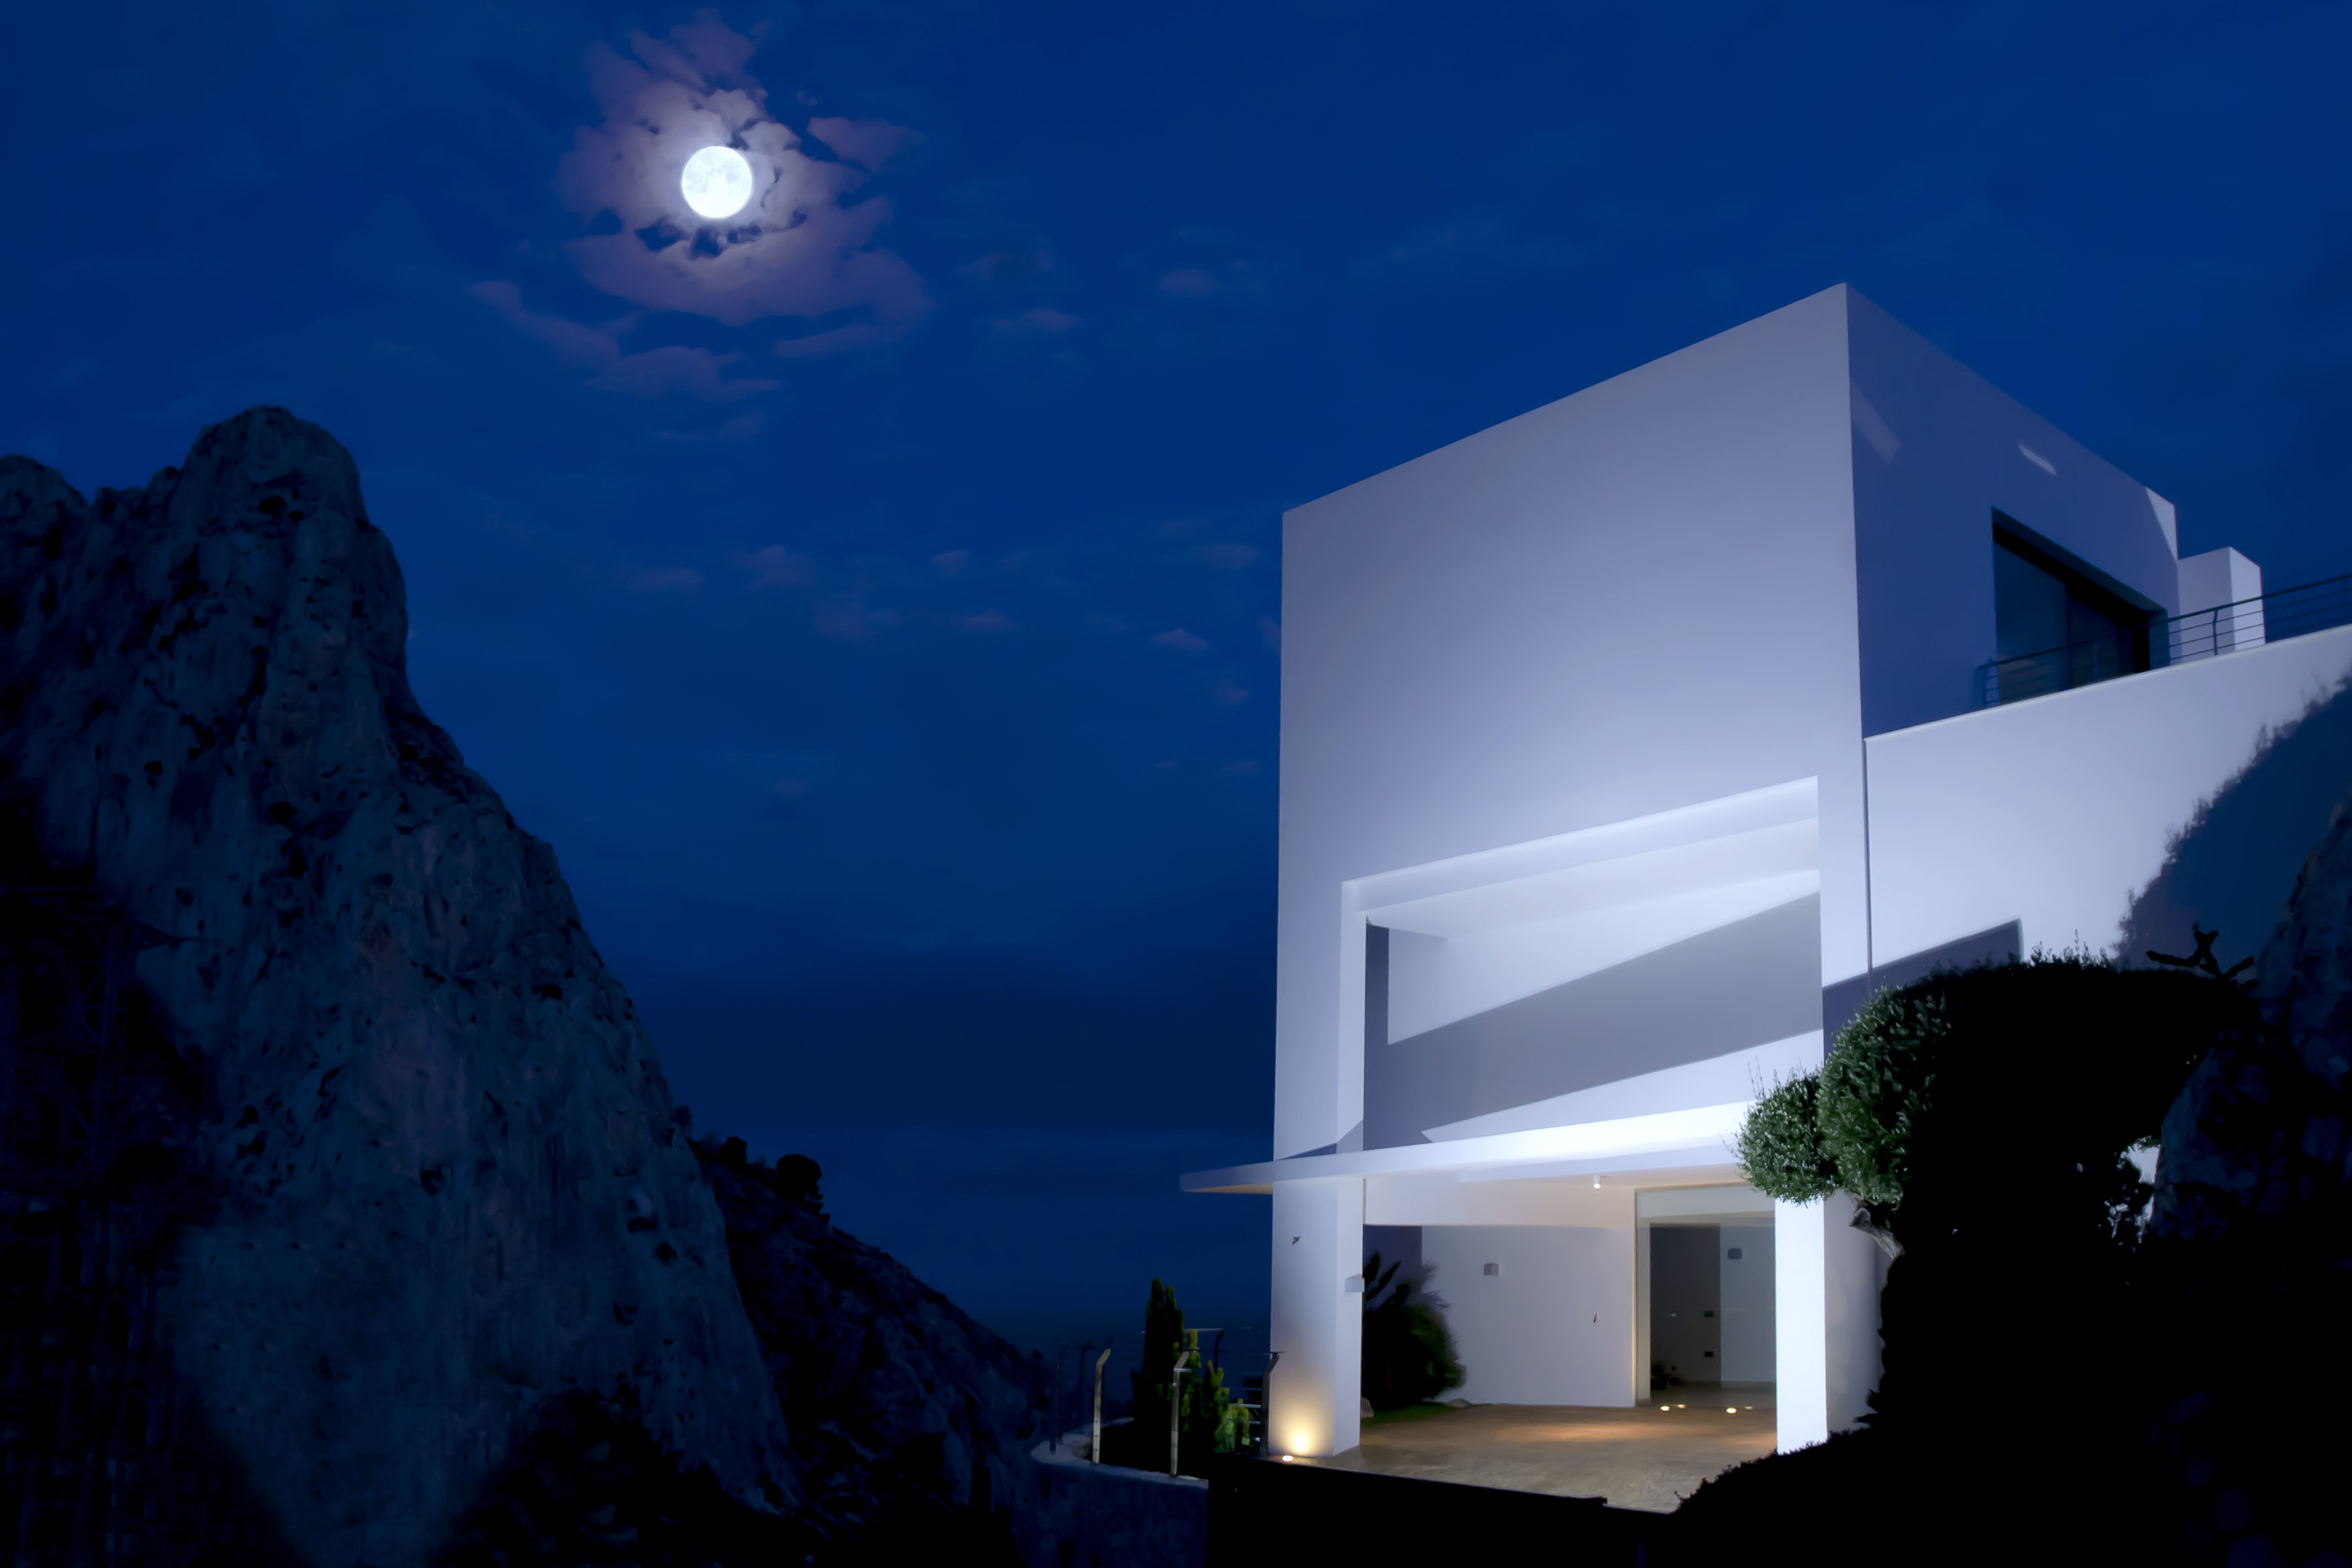 breathgaking view of a facade Modern Mansions Superlatives -La Perla del Mediterraneo by Carlos Gilardi at night